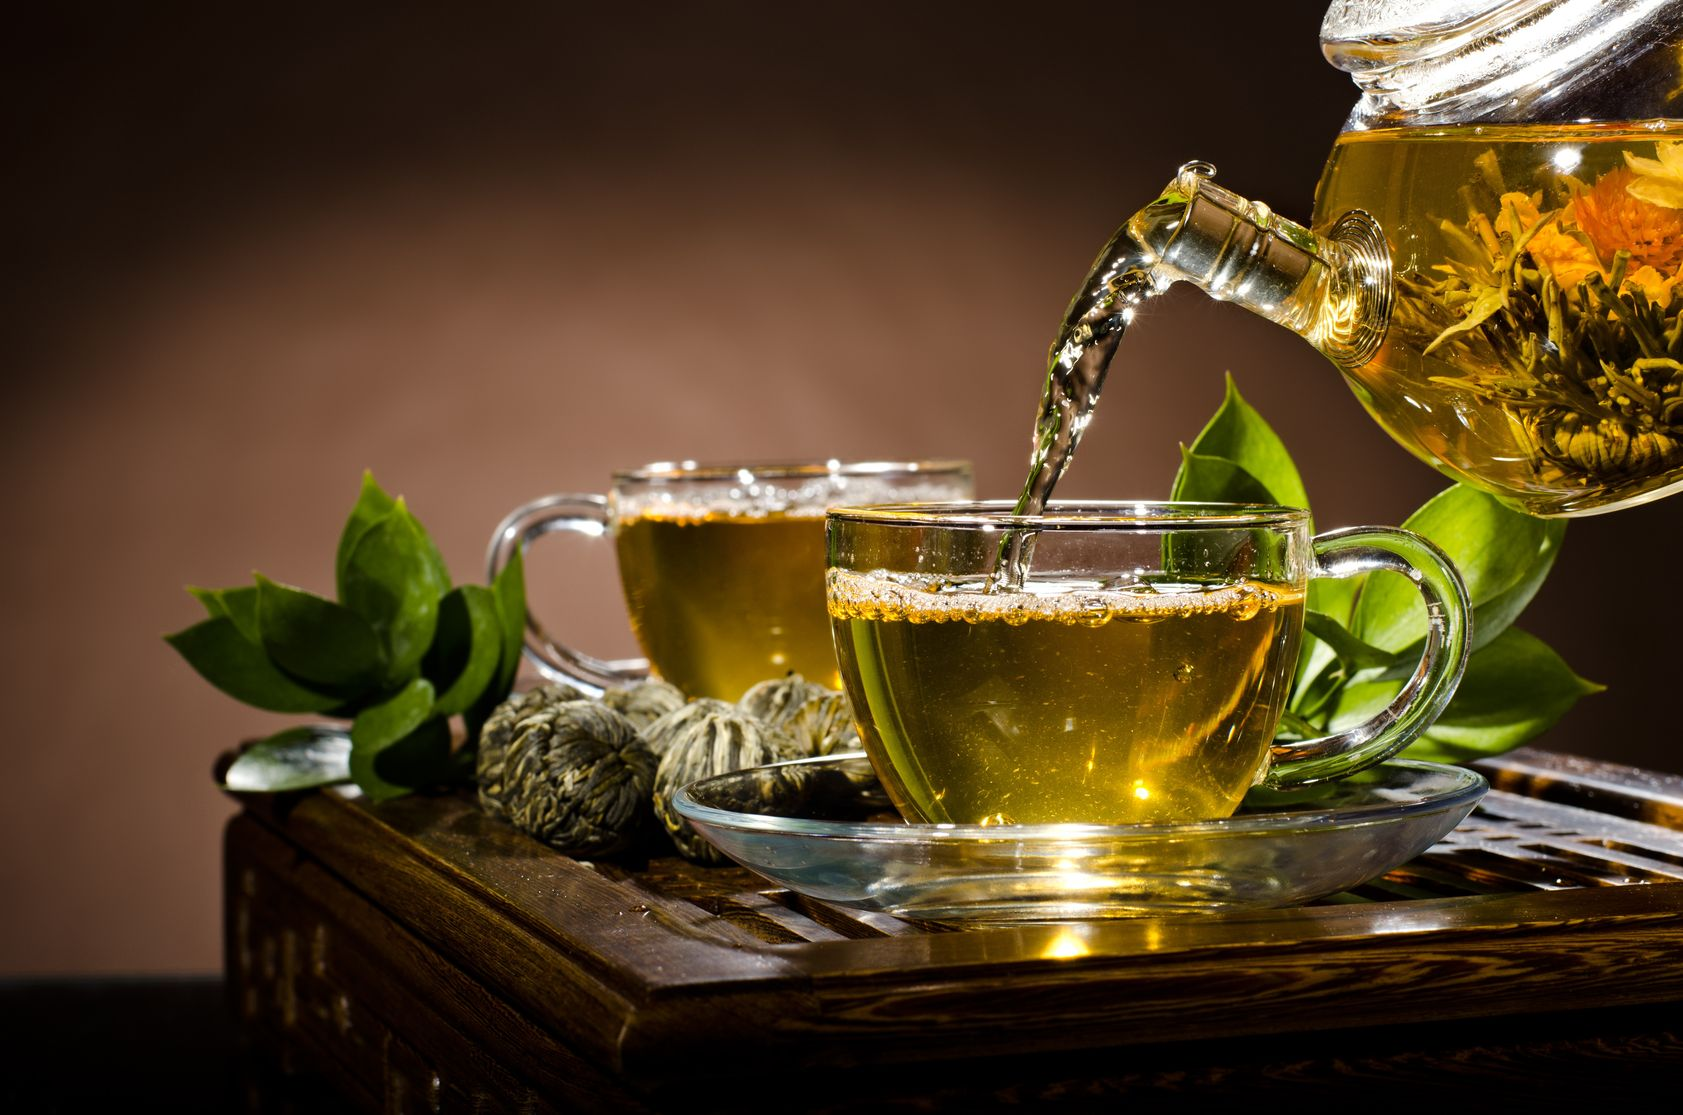 Health Canada and CBC say green tea extract causes liver damage